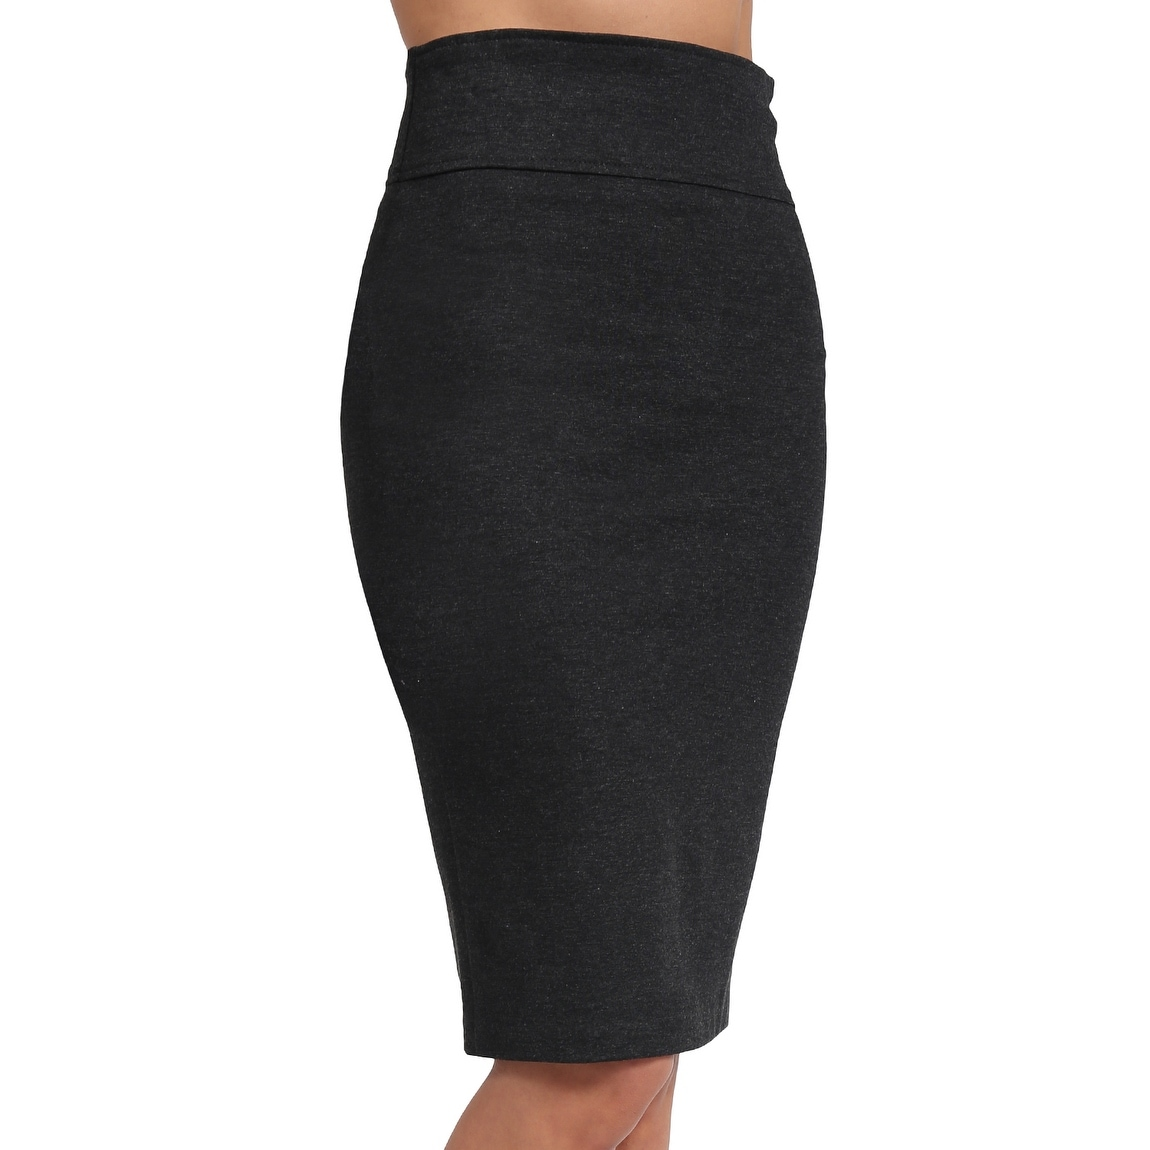 fce04a28b4 Shop NE PEOPLE Womens Solid Knee Length Work Office Pencil Skirts-NEWSK36 -  Free Shipping On Orders Over $45 - Overstock - 20117034